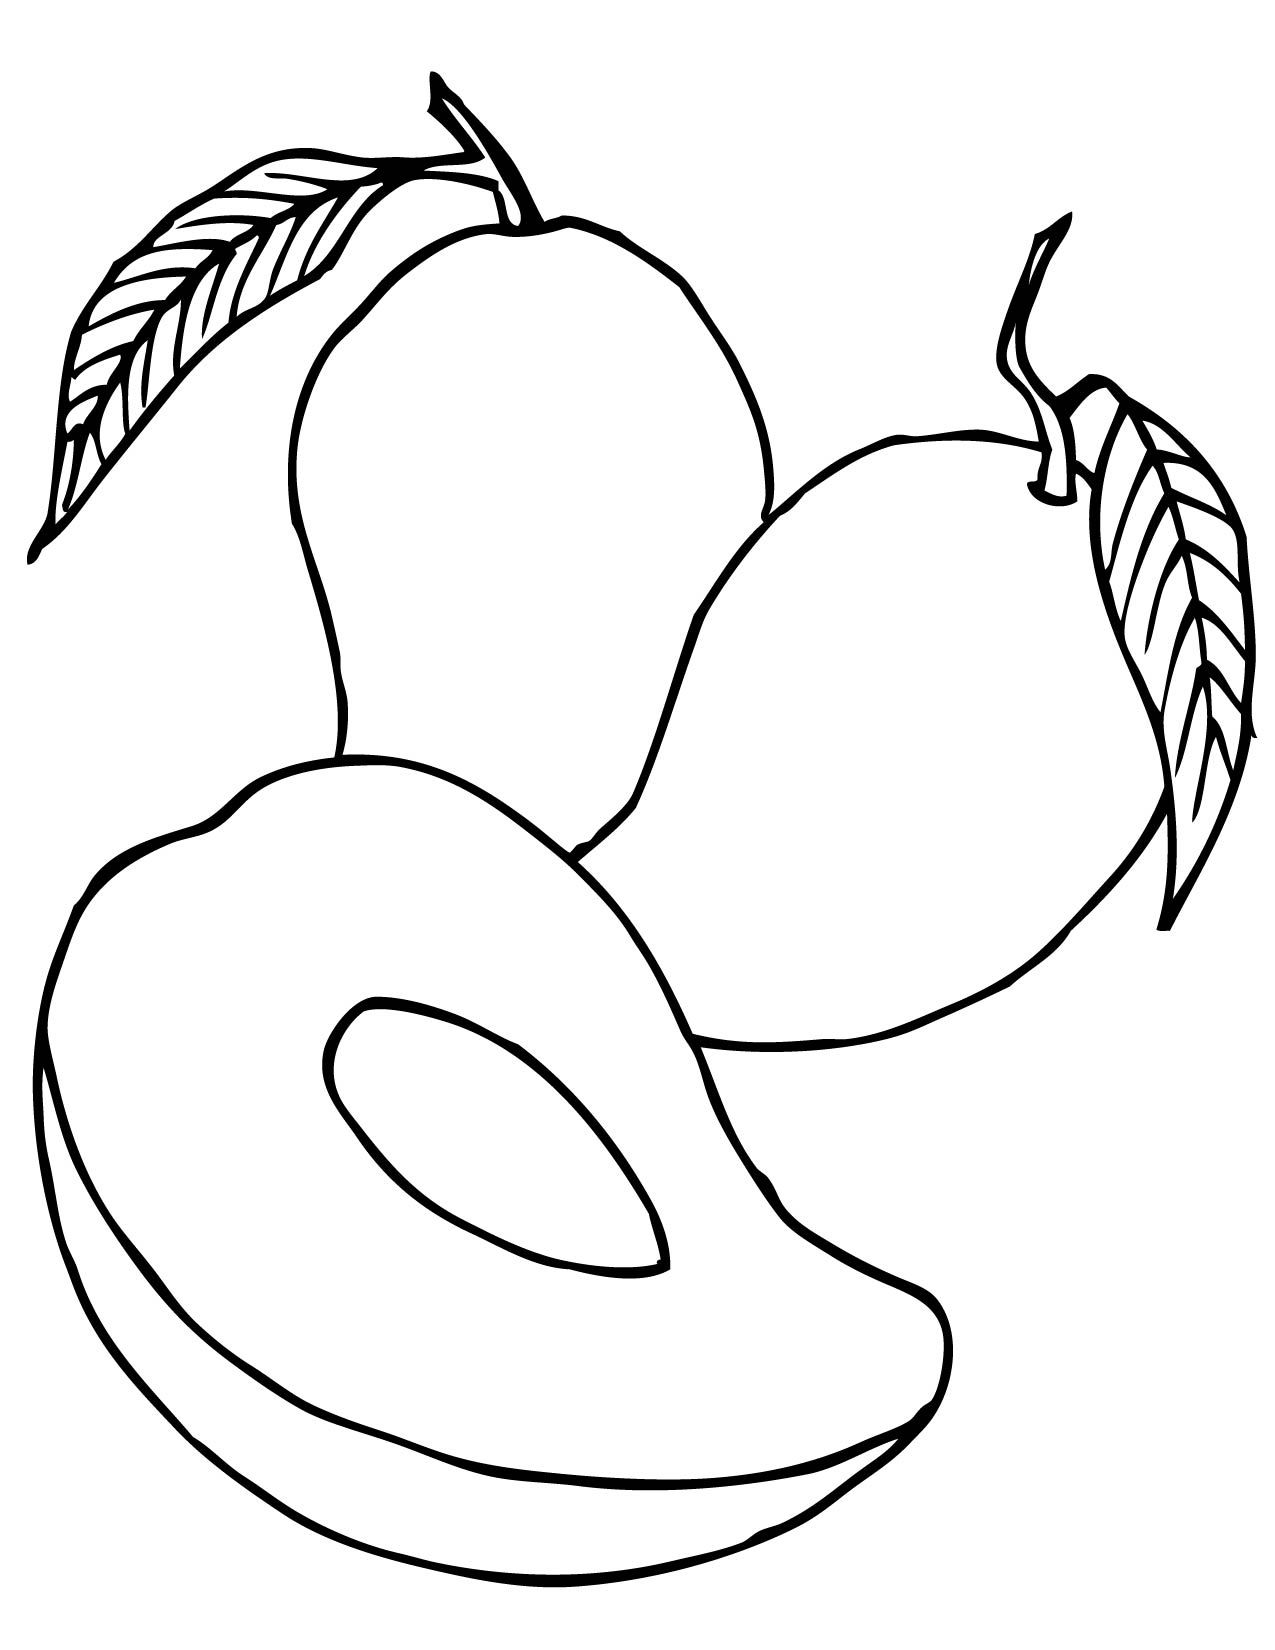 mango-coloring-page-0001-q1